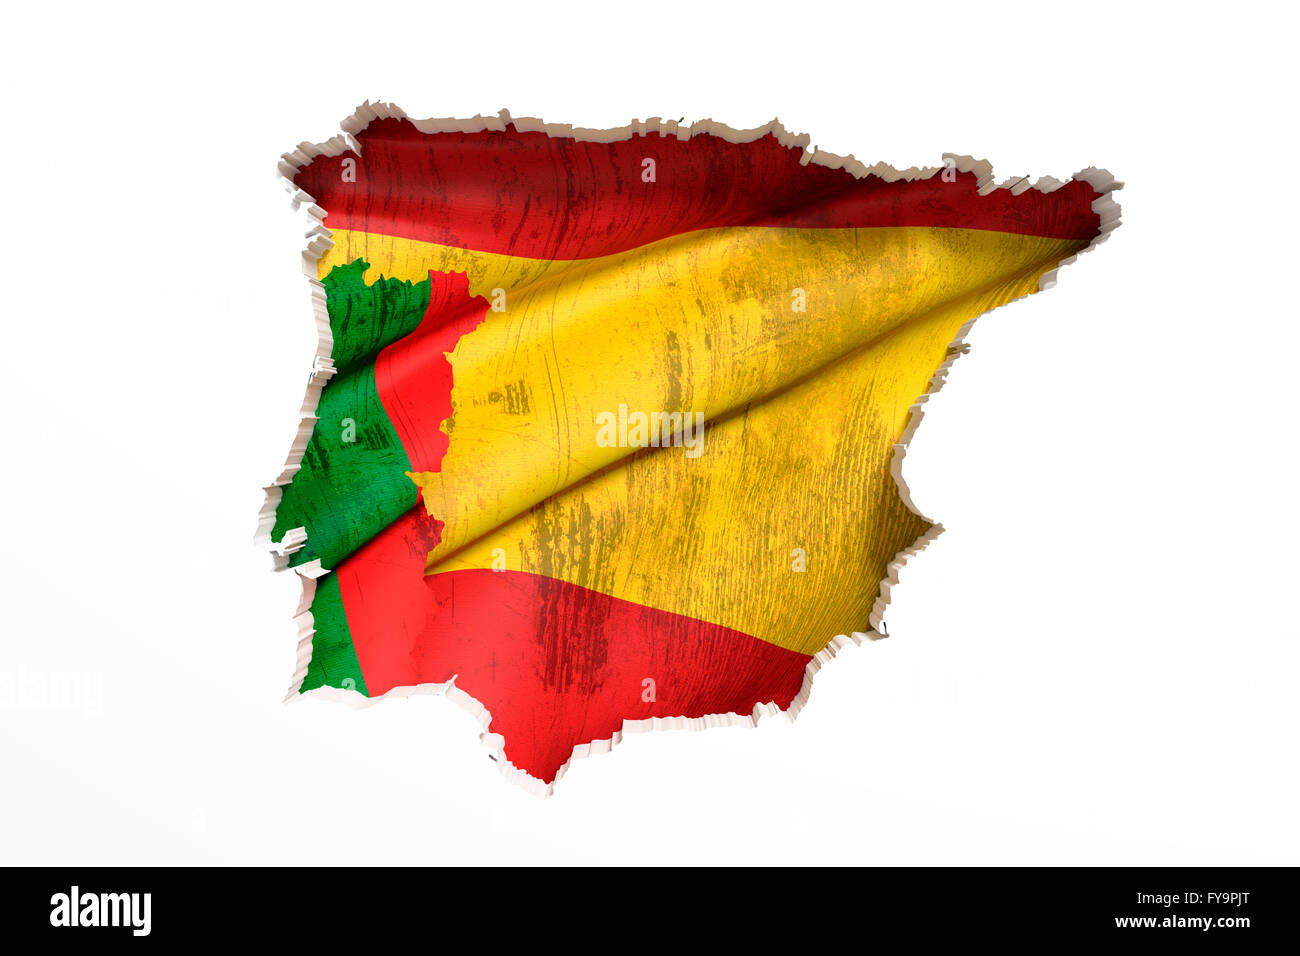 D Rendering Of Bright Colorful Iberian Peninsula Map Isolated In - Portugal map flag